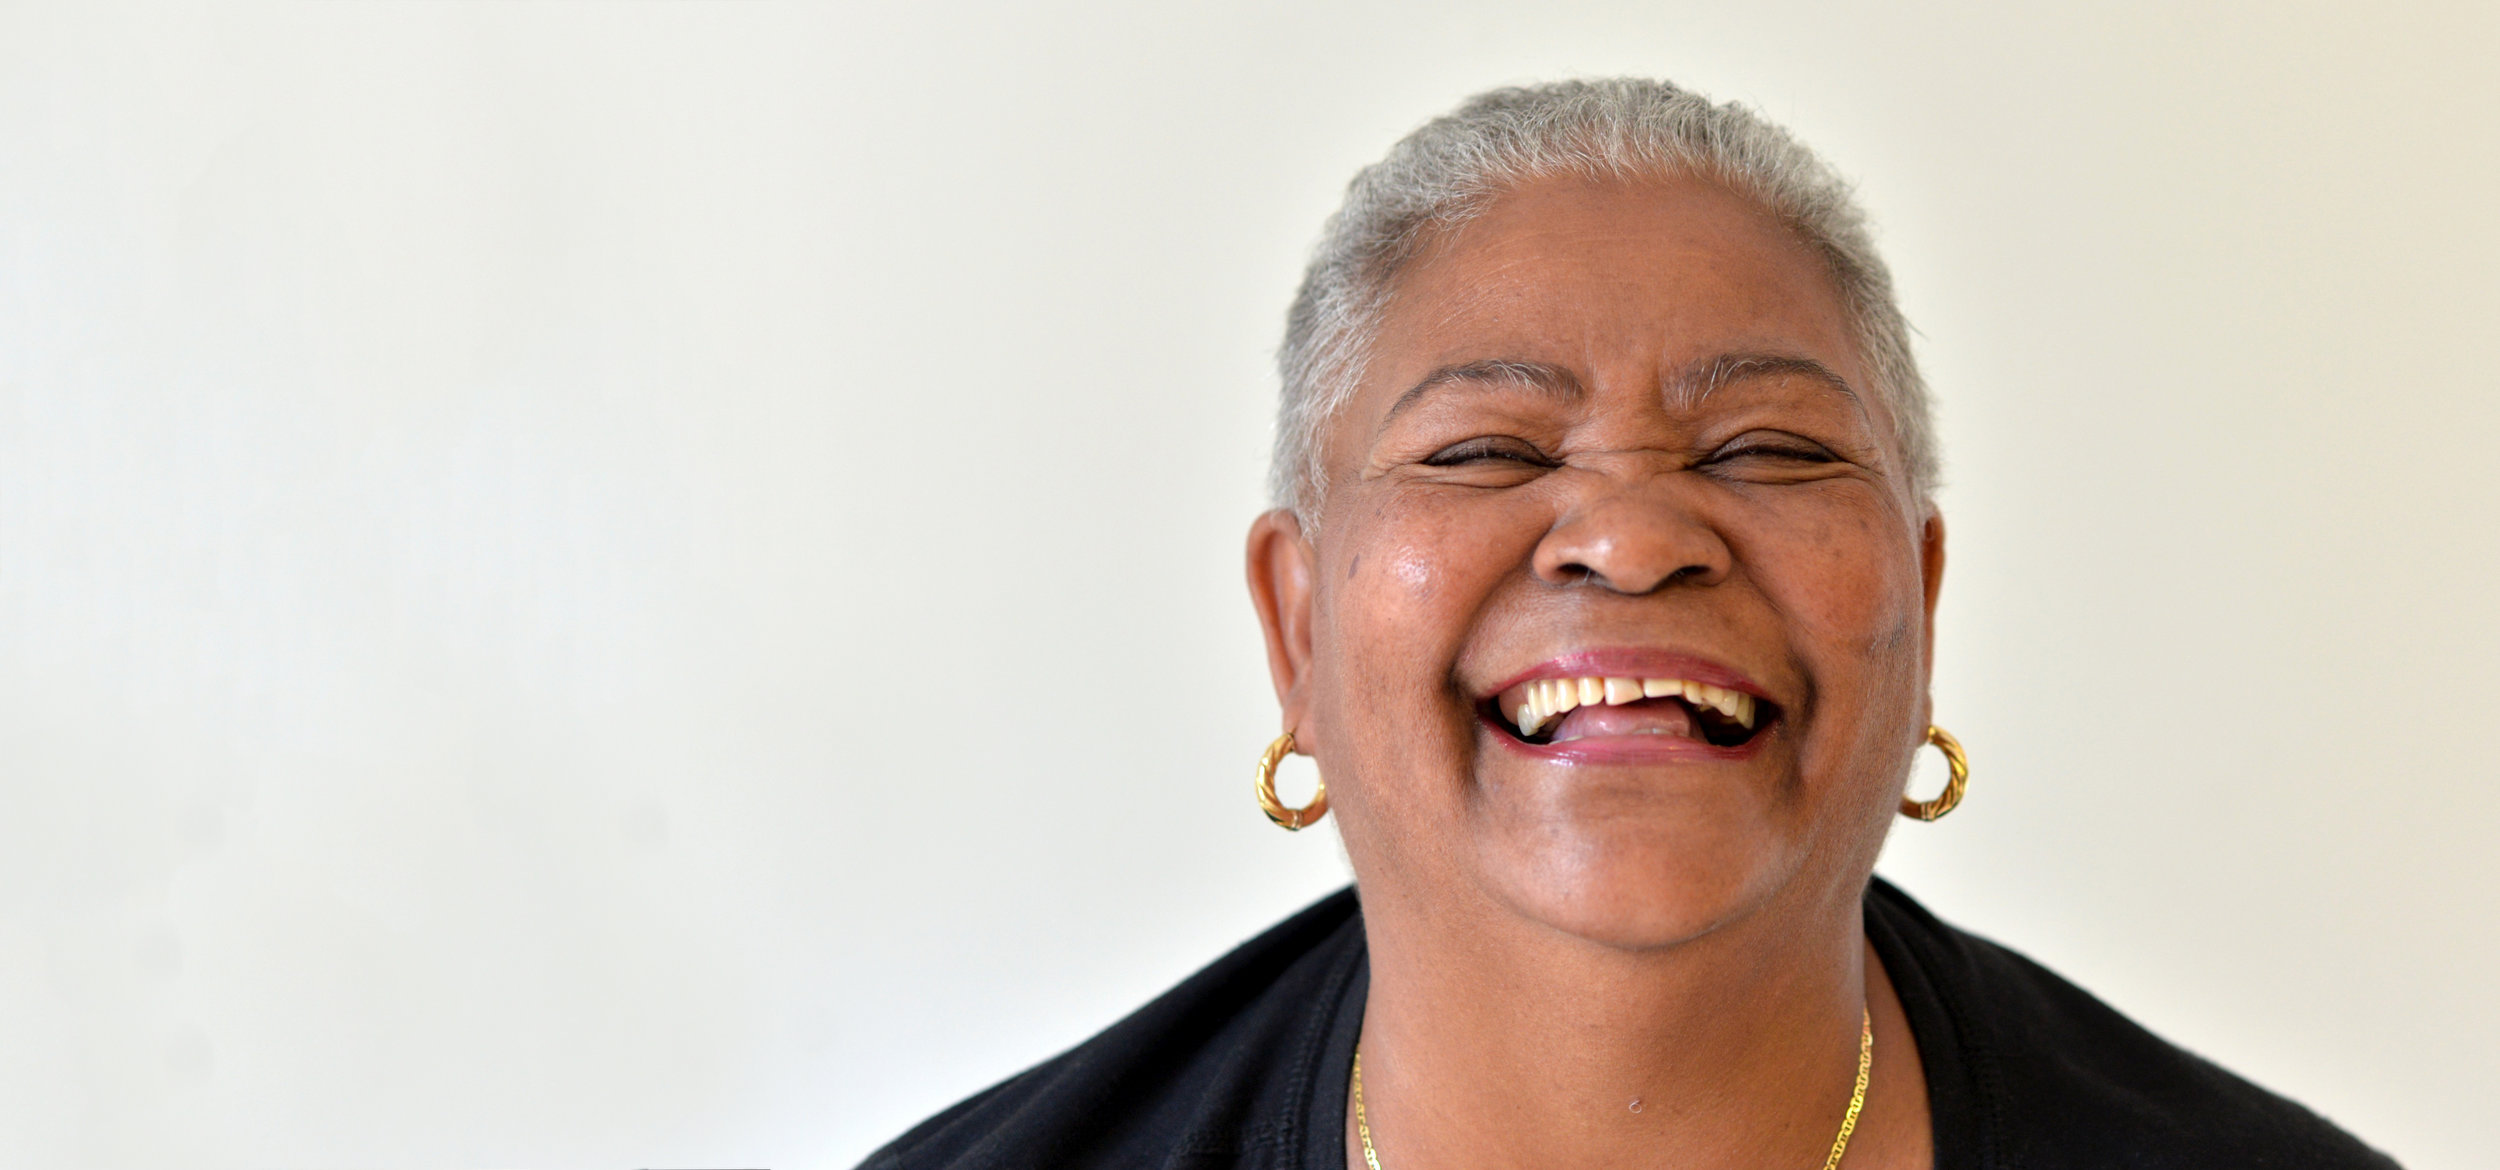 A PLACE TO FEEL LIKE YOU BELONG    At the Carter Burden Network we celebrate the value of older New Yorkers. We're a leading senior services provider and a model for innovation and creativity.